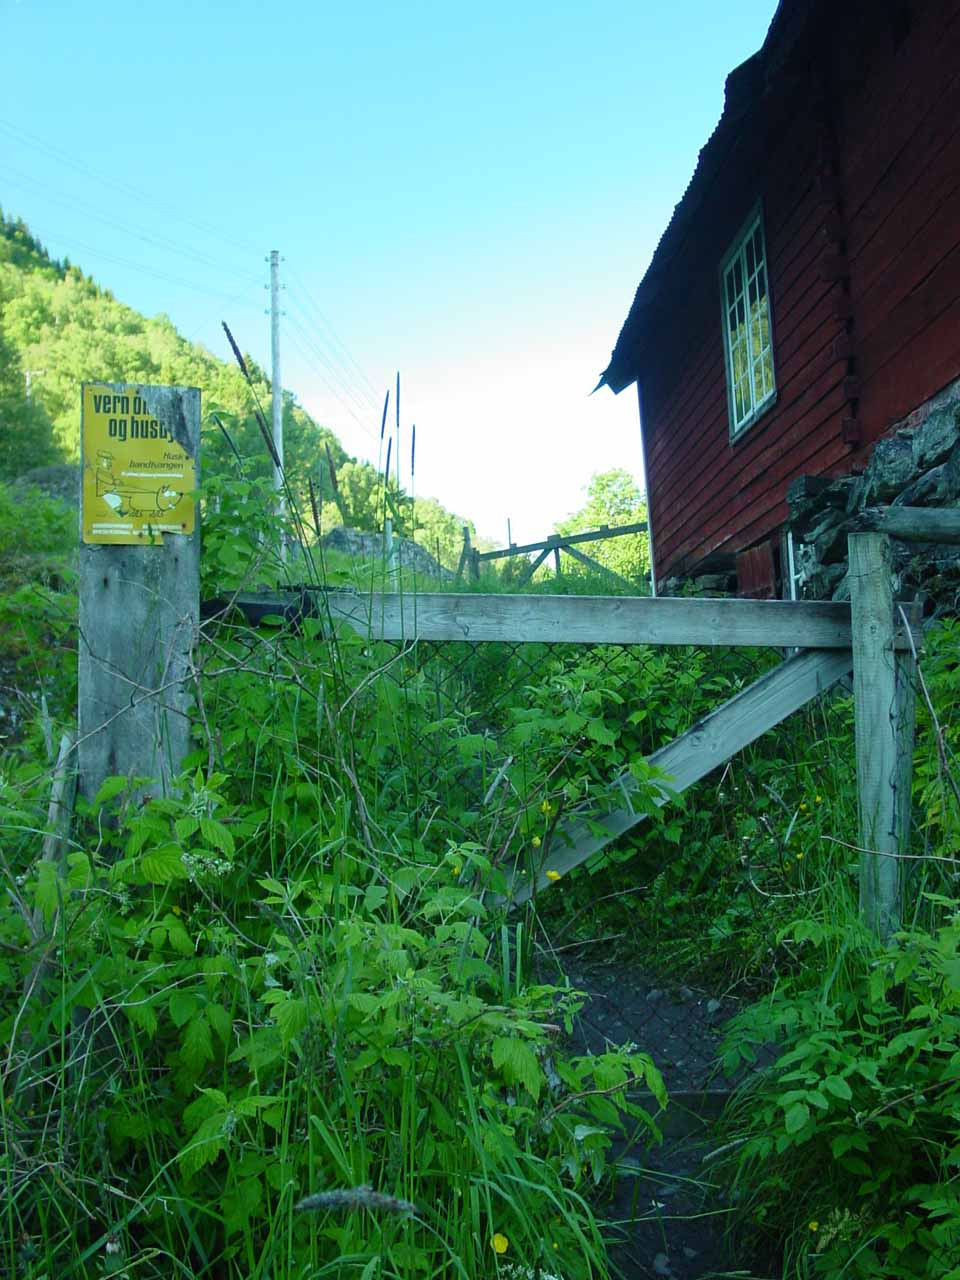 Some parts of the trail feel like trespassing, but indeed we had to persist as that was where the trail went...